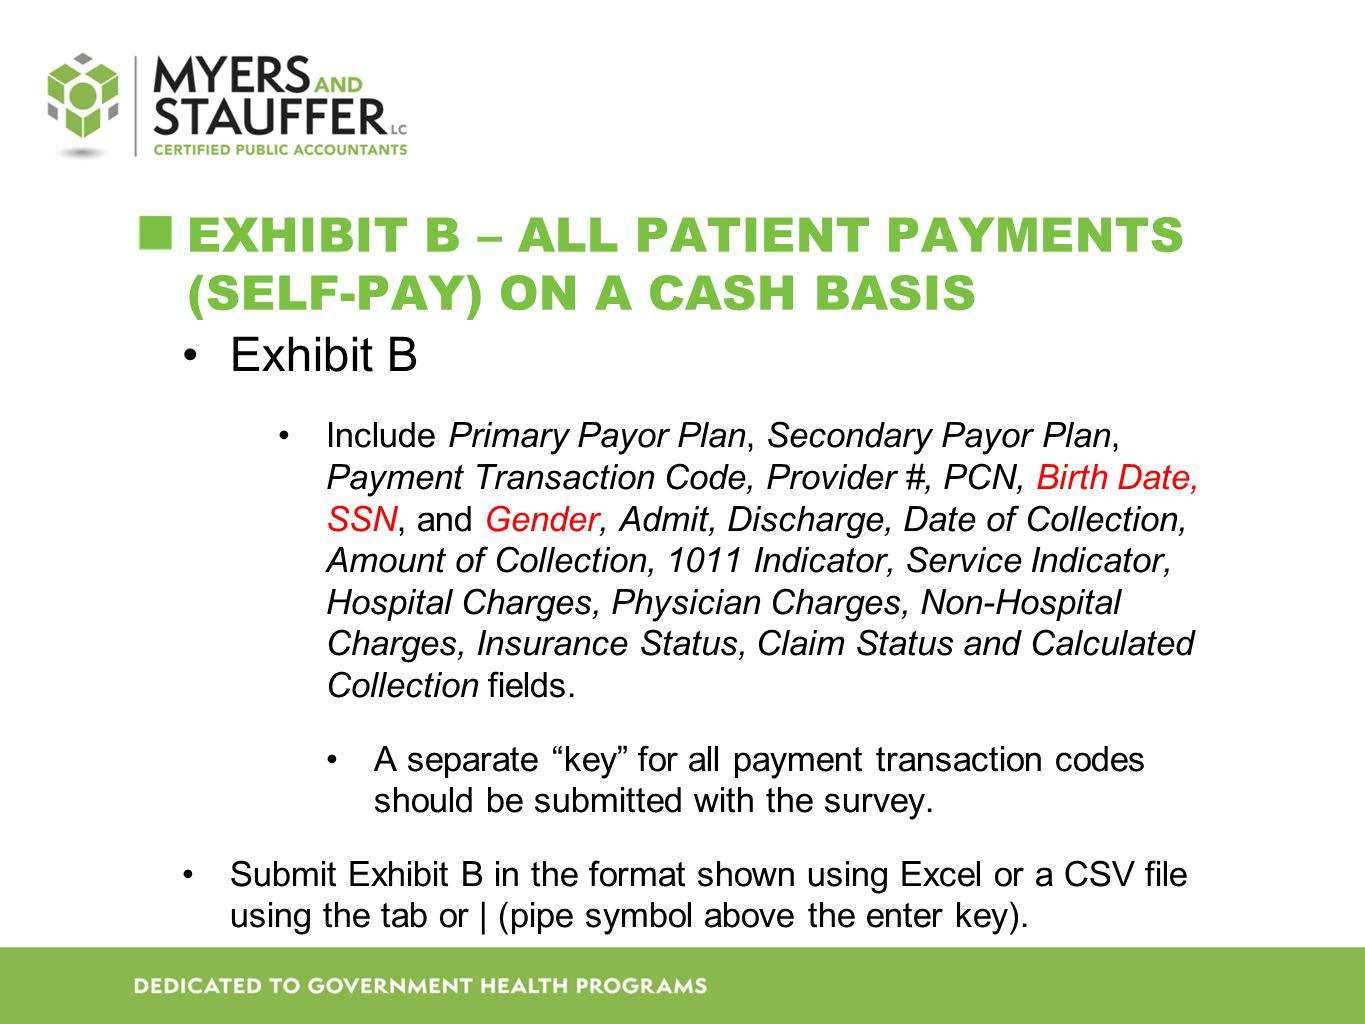 EXHIBIT B – ALL PATIENT PAYMENTS (SELF-PAY) ON A CASH BASIS Exhibit B Include Primary Payor Plan, Secondary Payor Plan, Payment Transaction Code, Provider #, PCN, Birth Date, SSN, and Gender, Admit, Discharge, Date of Collection, Amount of Collection, 1011 Indicator, Service Indicator, Hospital Charges, Physician Charges, Non-Hospital Charges, Insurance Status, Claim Status and Calculated Collection fields.